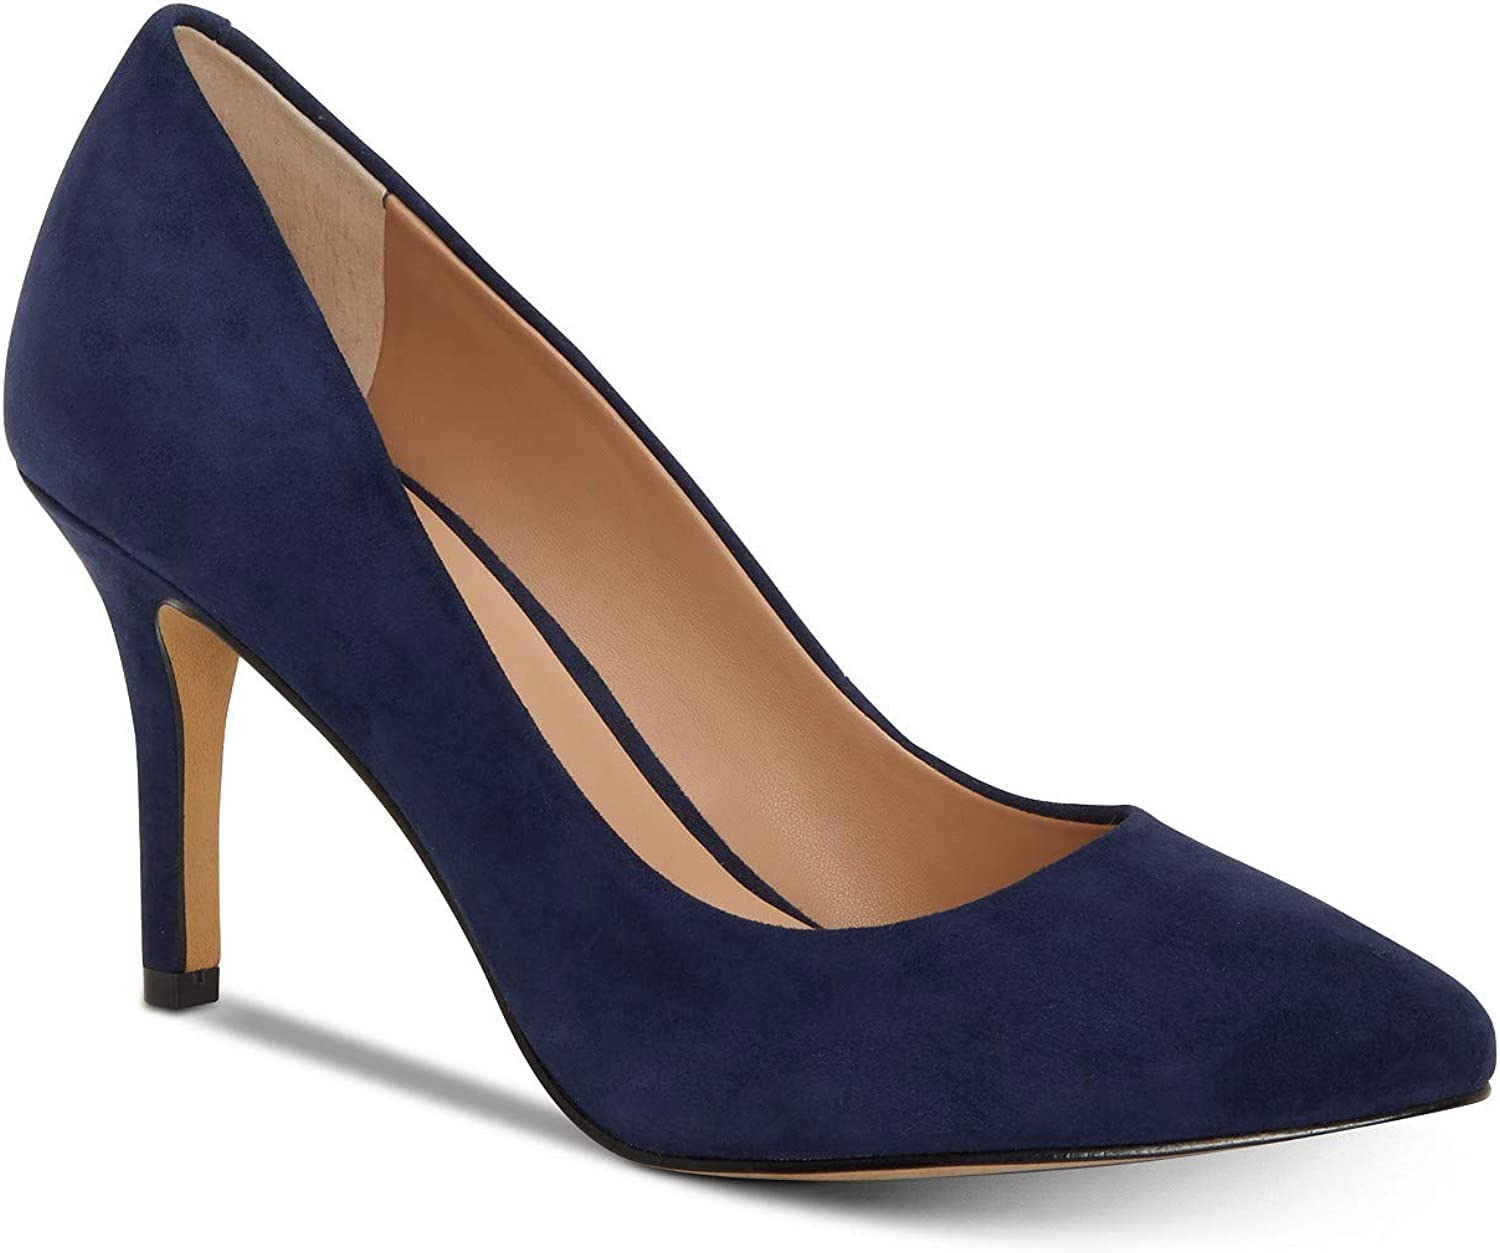 INC International Concepts Womens Zitah5 Leather Pointed Toe Classic Pumps